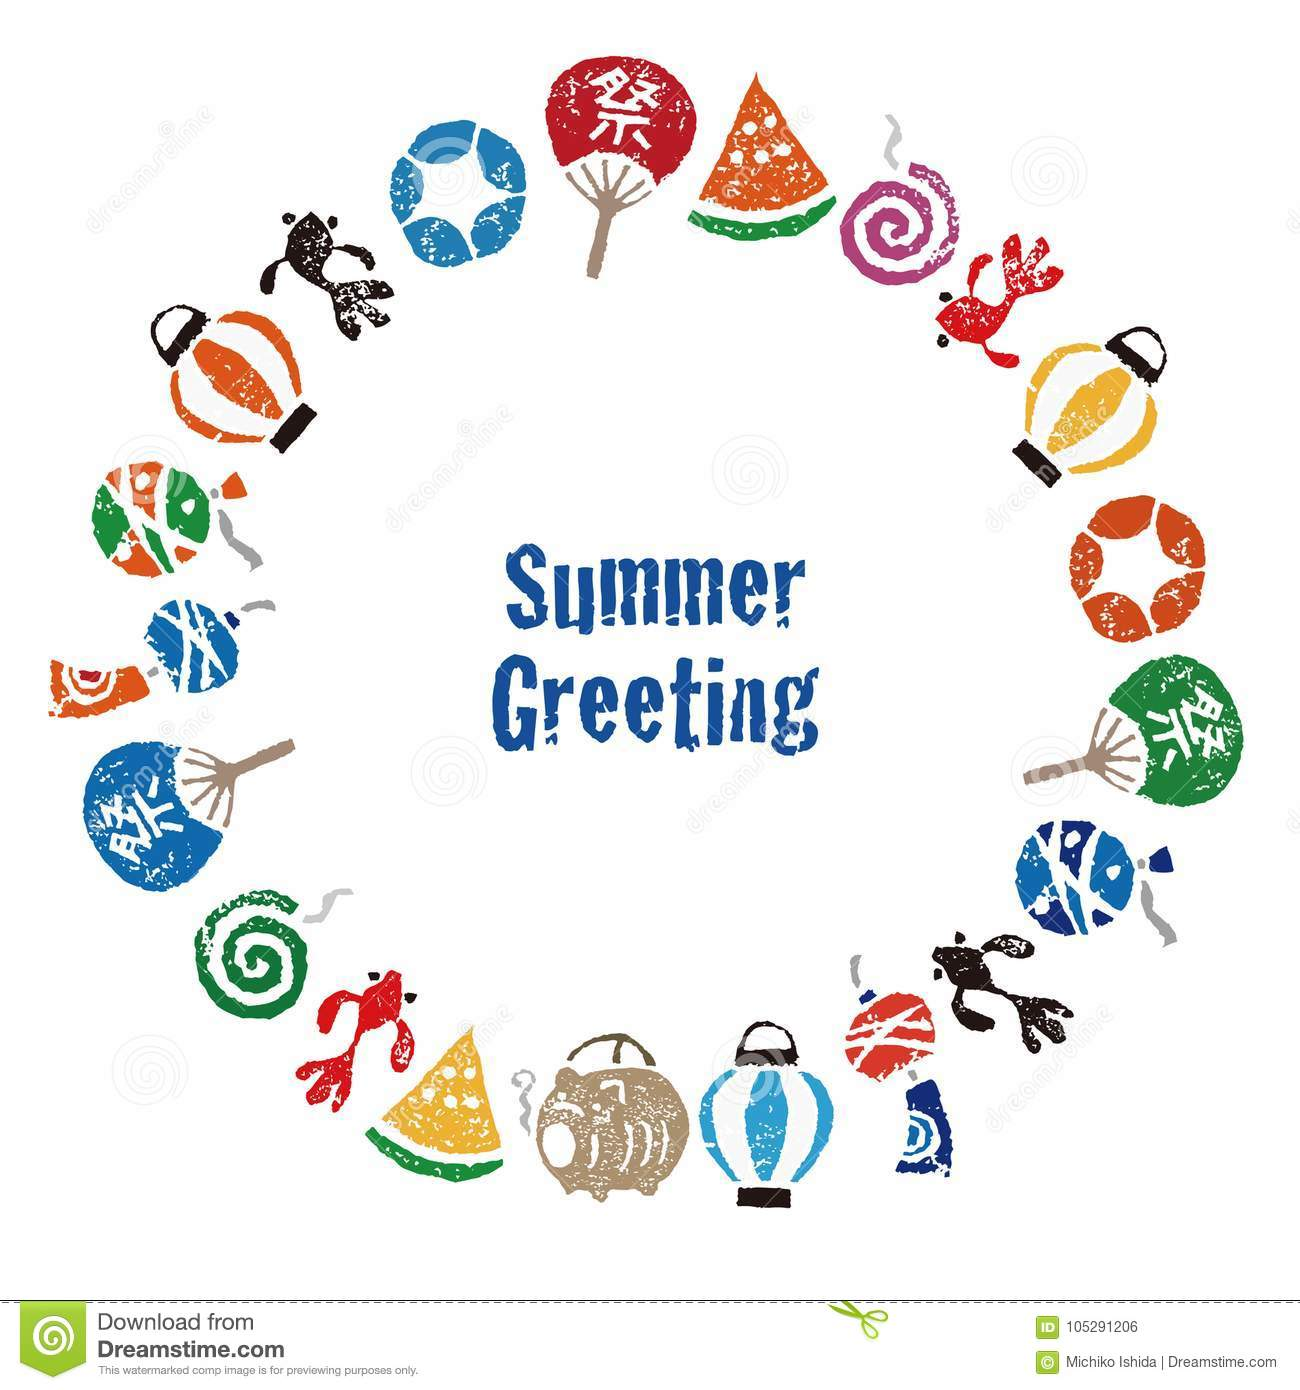 Summer greeting with japanese summer elements stock illustration summer greeting with japanese summer elements watermelon handfan wind chime mosquito coil goldfish lantern morning glory and water yoyo m4hsunfo